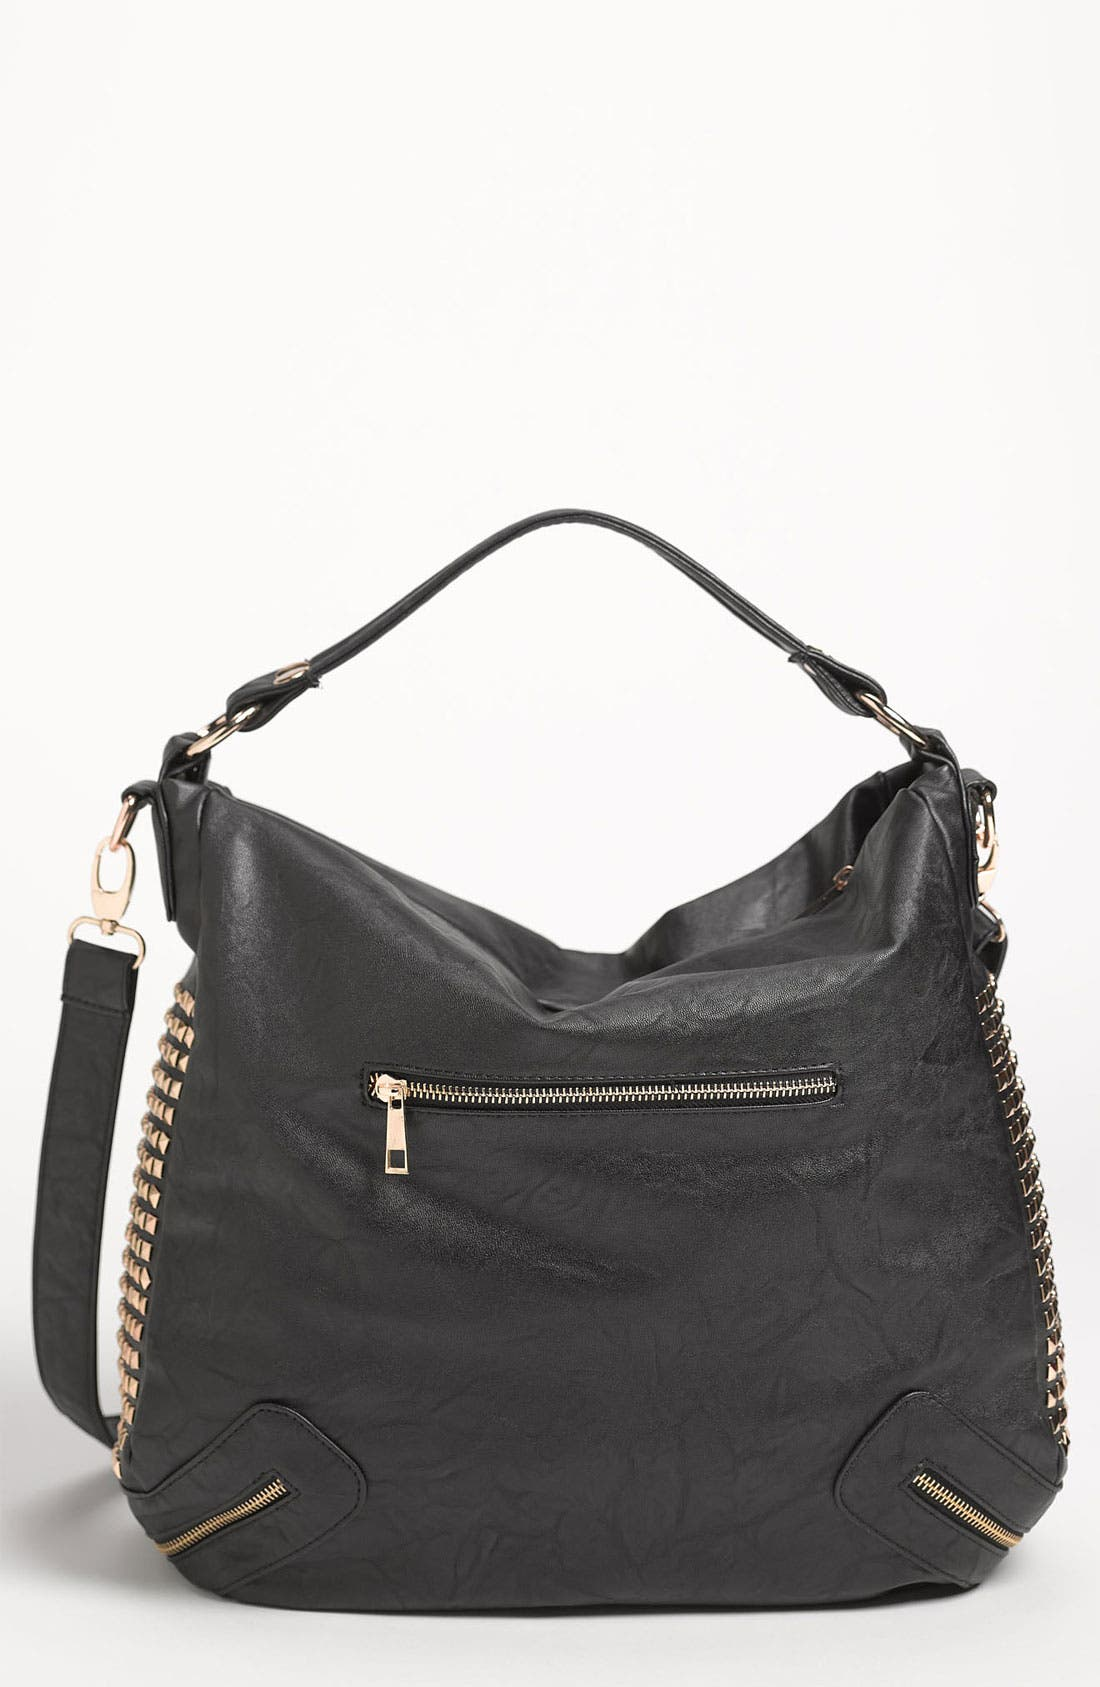 Main Image - Top Choice Studded Convertible Hobo Bag